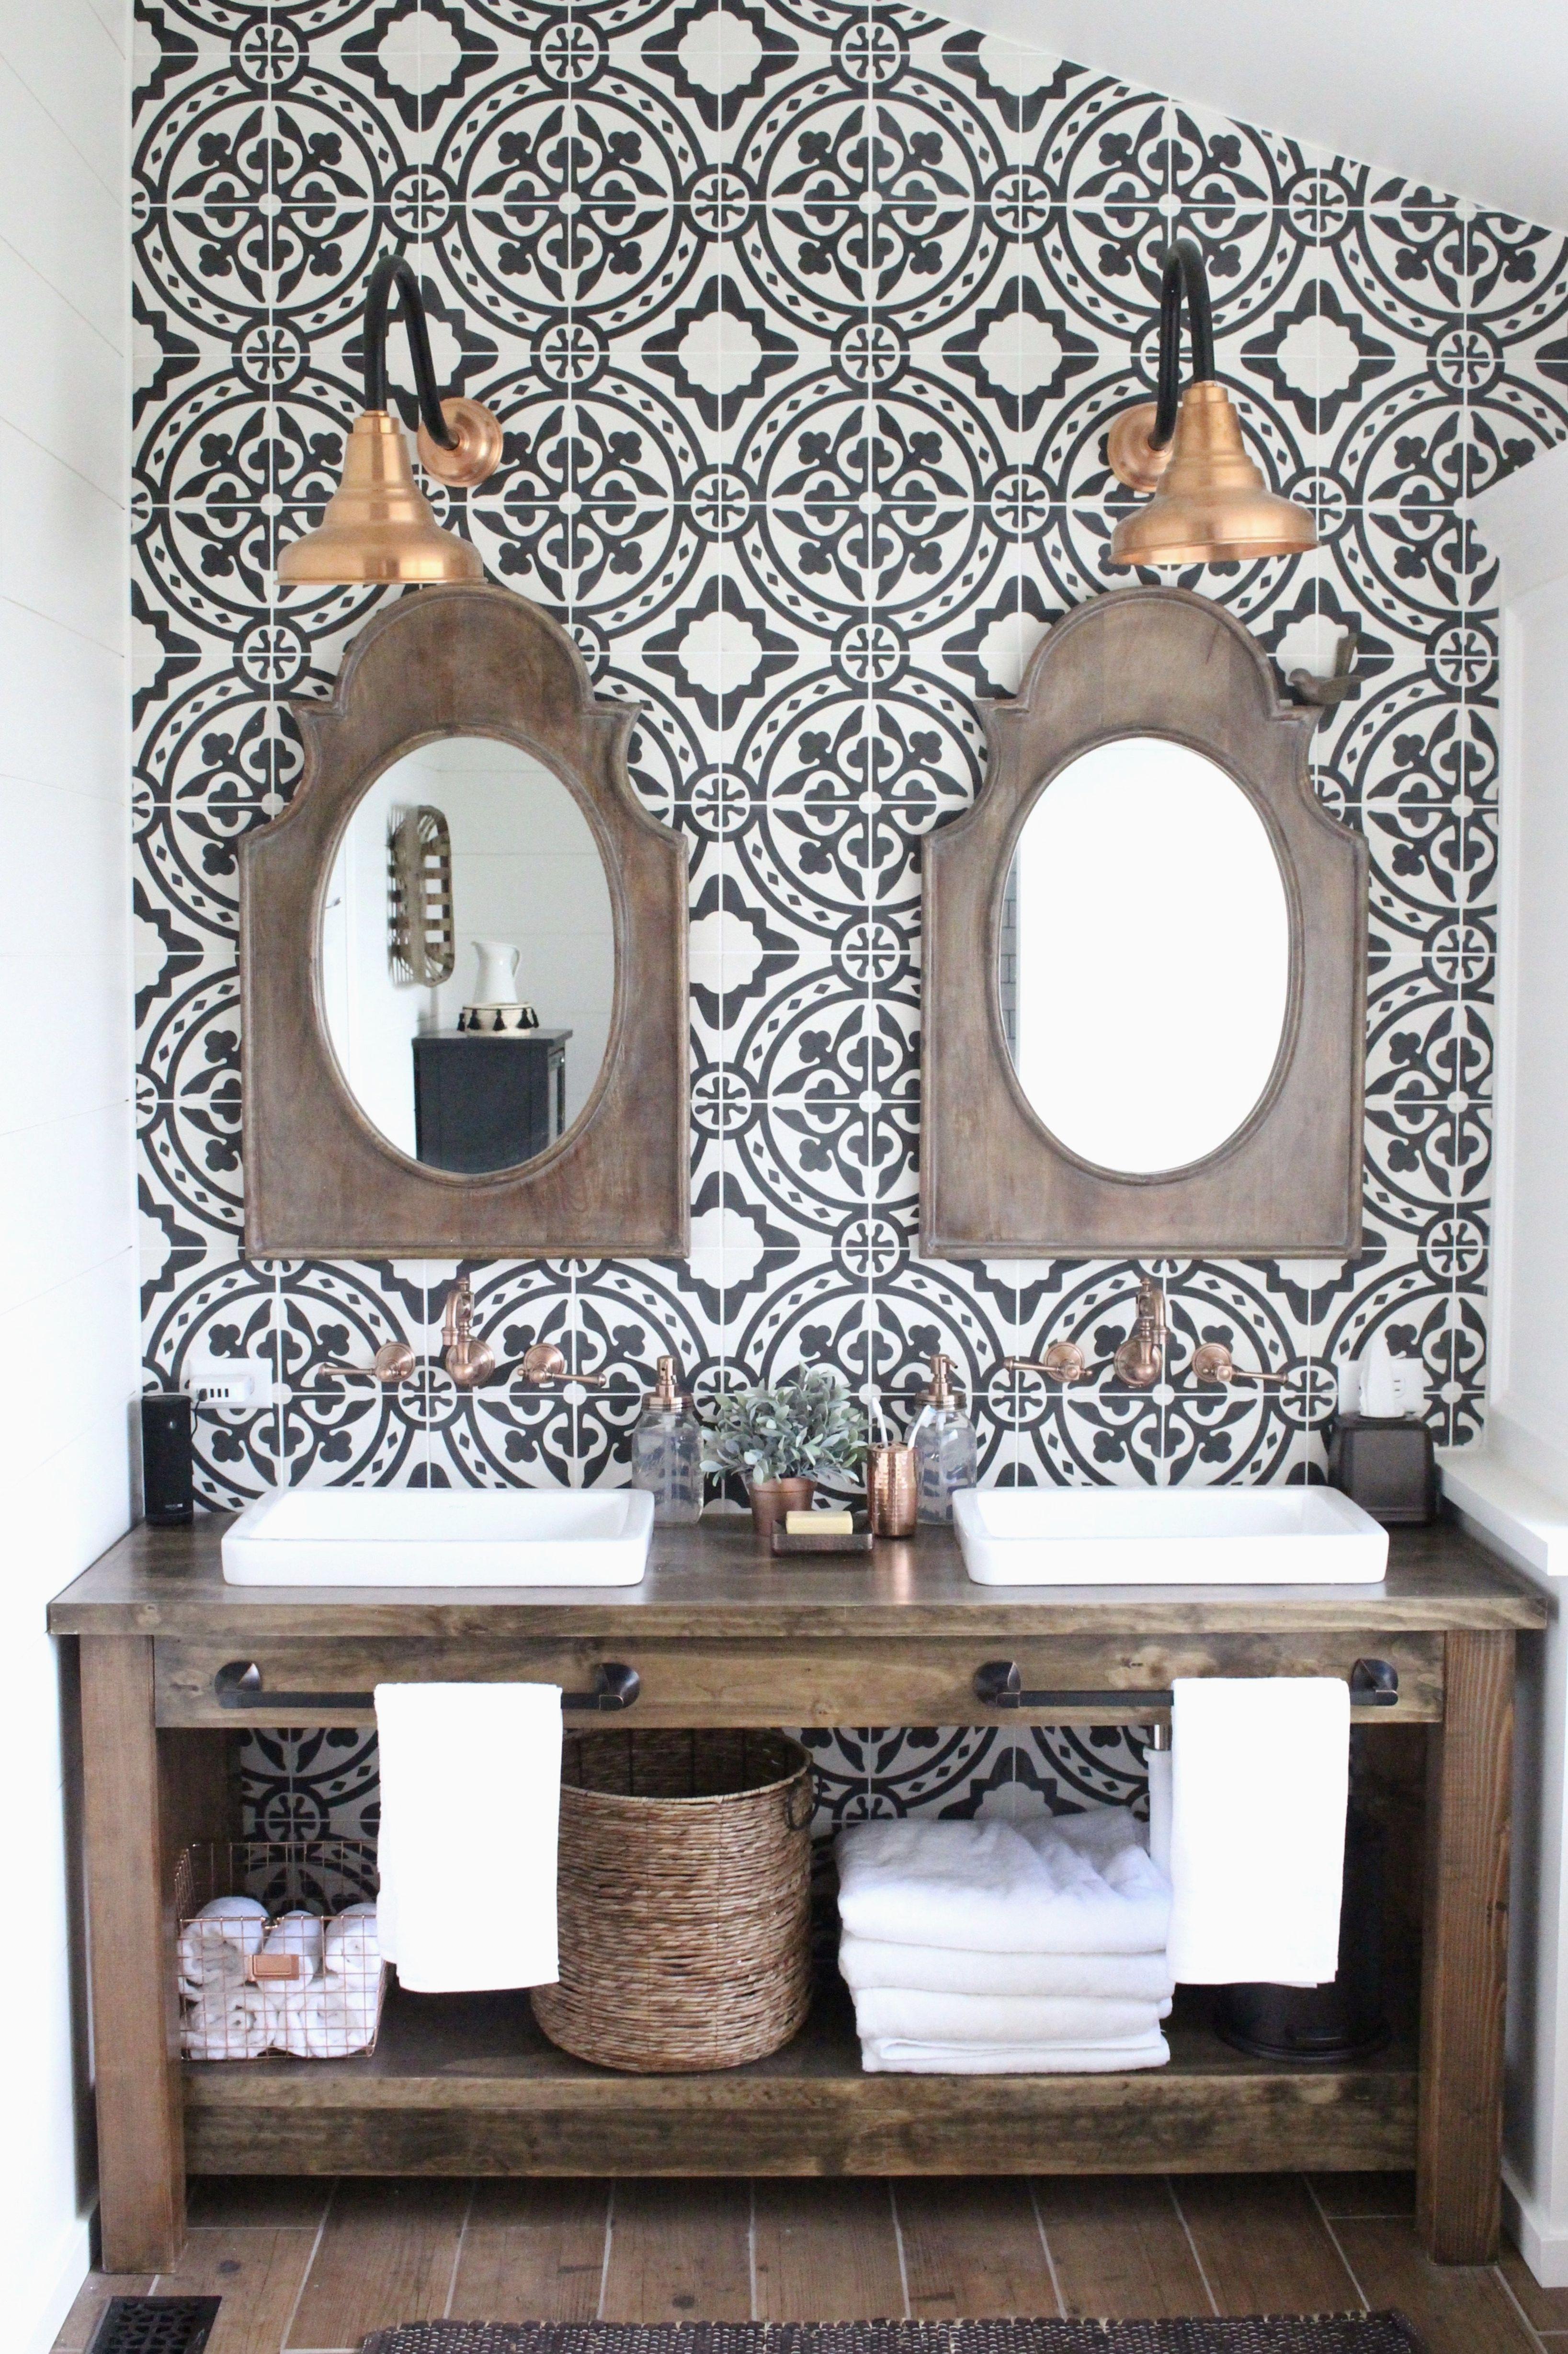 Remodeling Bathroom Without Permit Remodeling Bathroom Pinterest - Bathroom remodel without permit